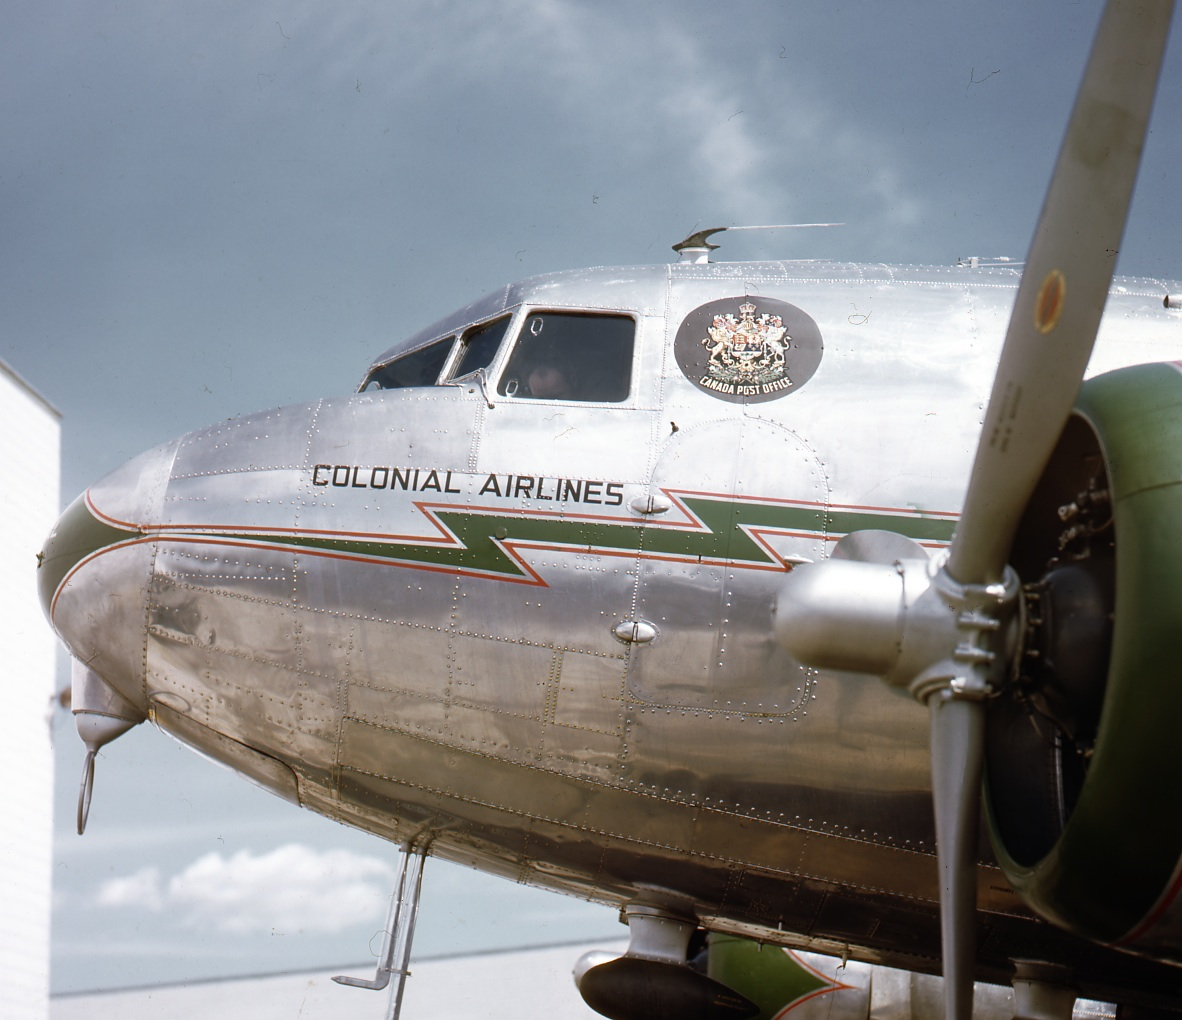 Having begun in 1944 as USAAF 43-15079, this DC-3 was acquired